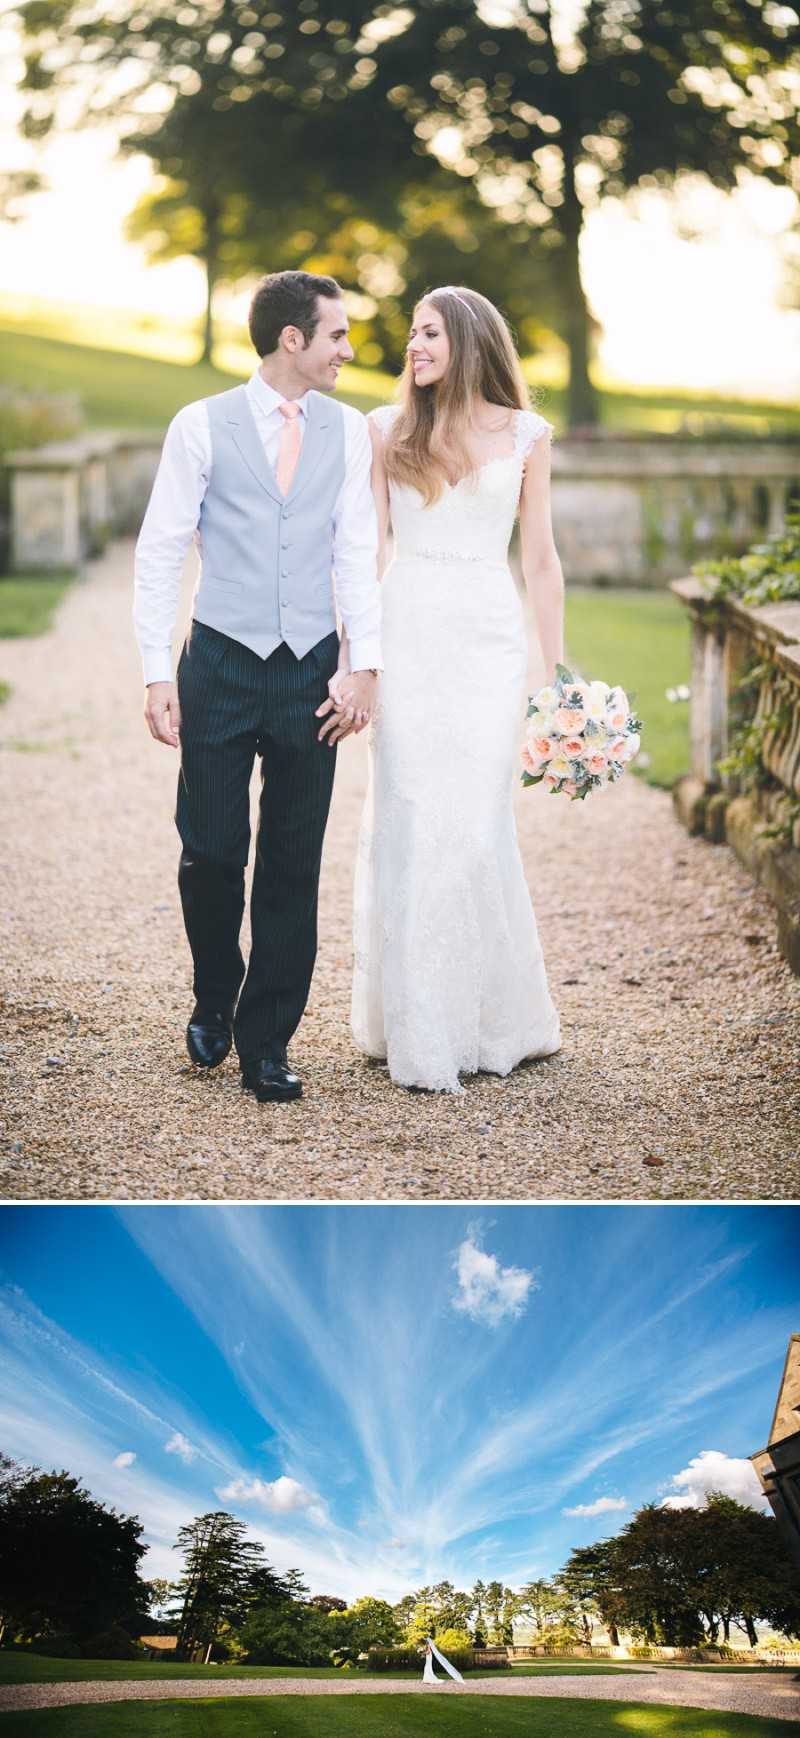 A Elegant And Classic English Wedding At Coombe Lodge With A Pronovias 'Balta' Dress With A Peach And Duck Egg Blue Colour Scheme Photographed By Albert Palmer._0012